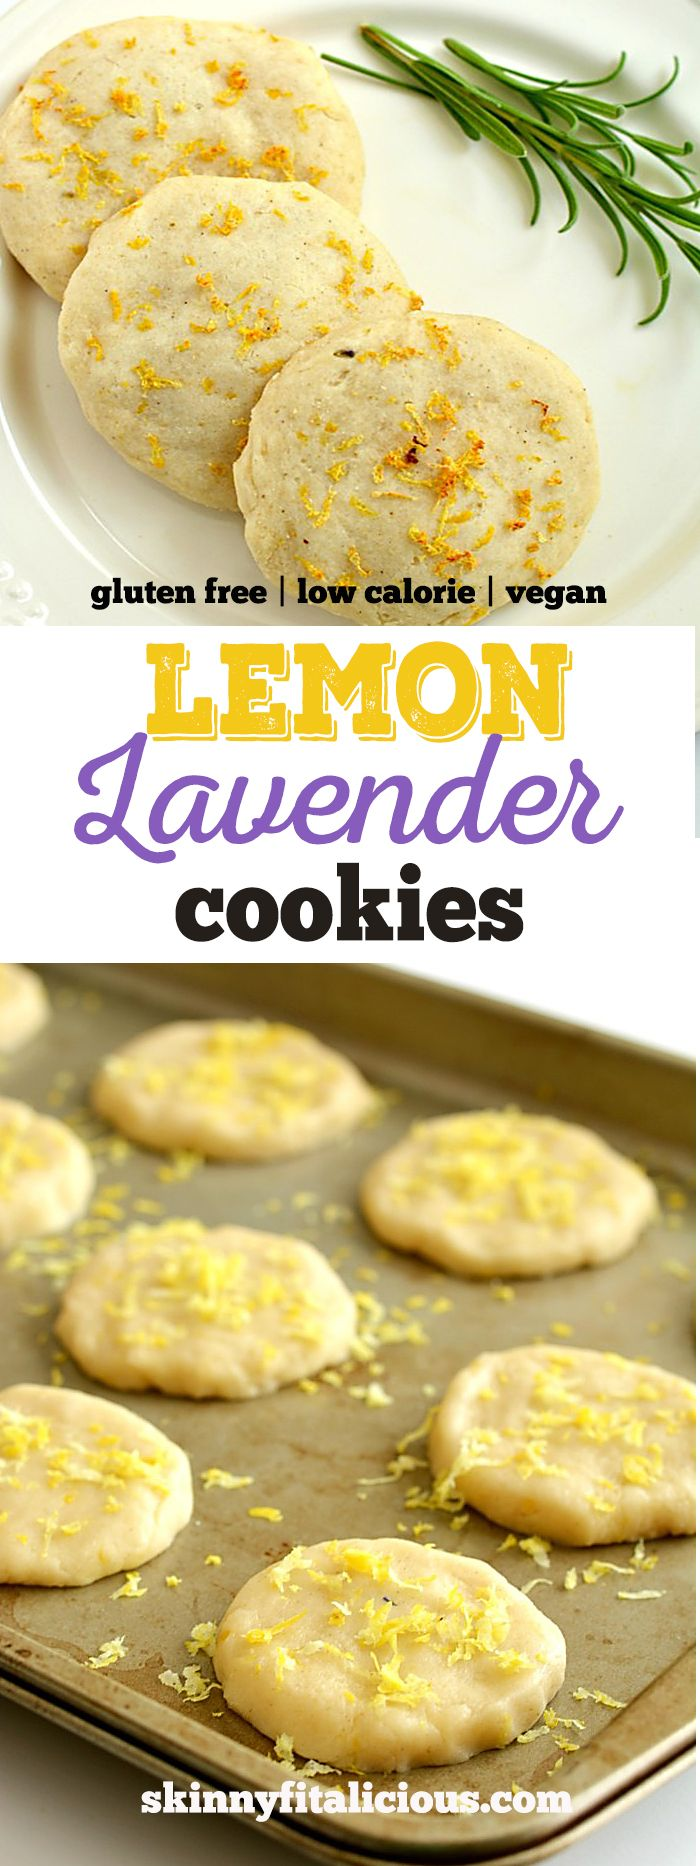 Healthy Lemon Lavender Cookies are perfect for warm weather! Packed with citrus, these Vegan, gluten free cookies are light, refreshing and subtly sweet. Gluten Free + Low Calorie + Vegan